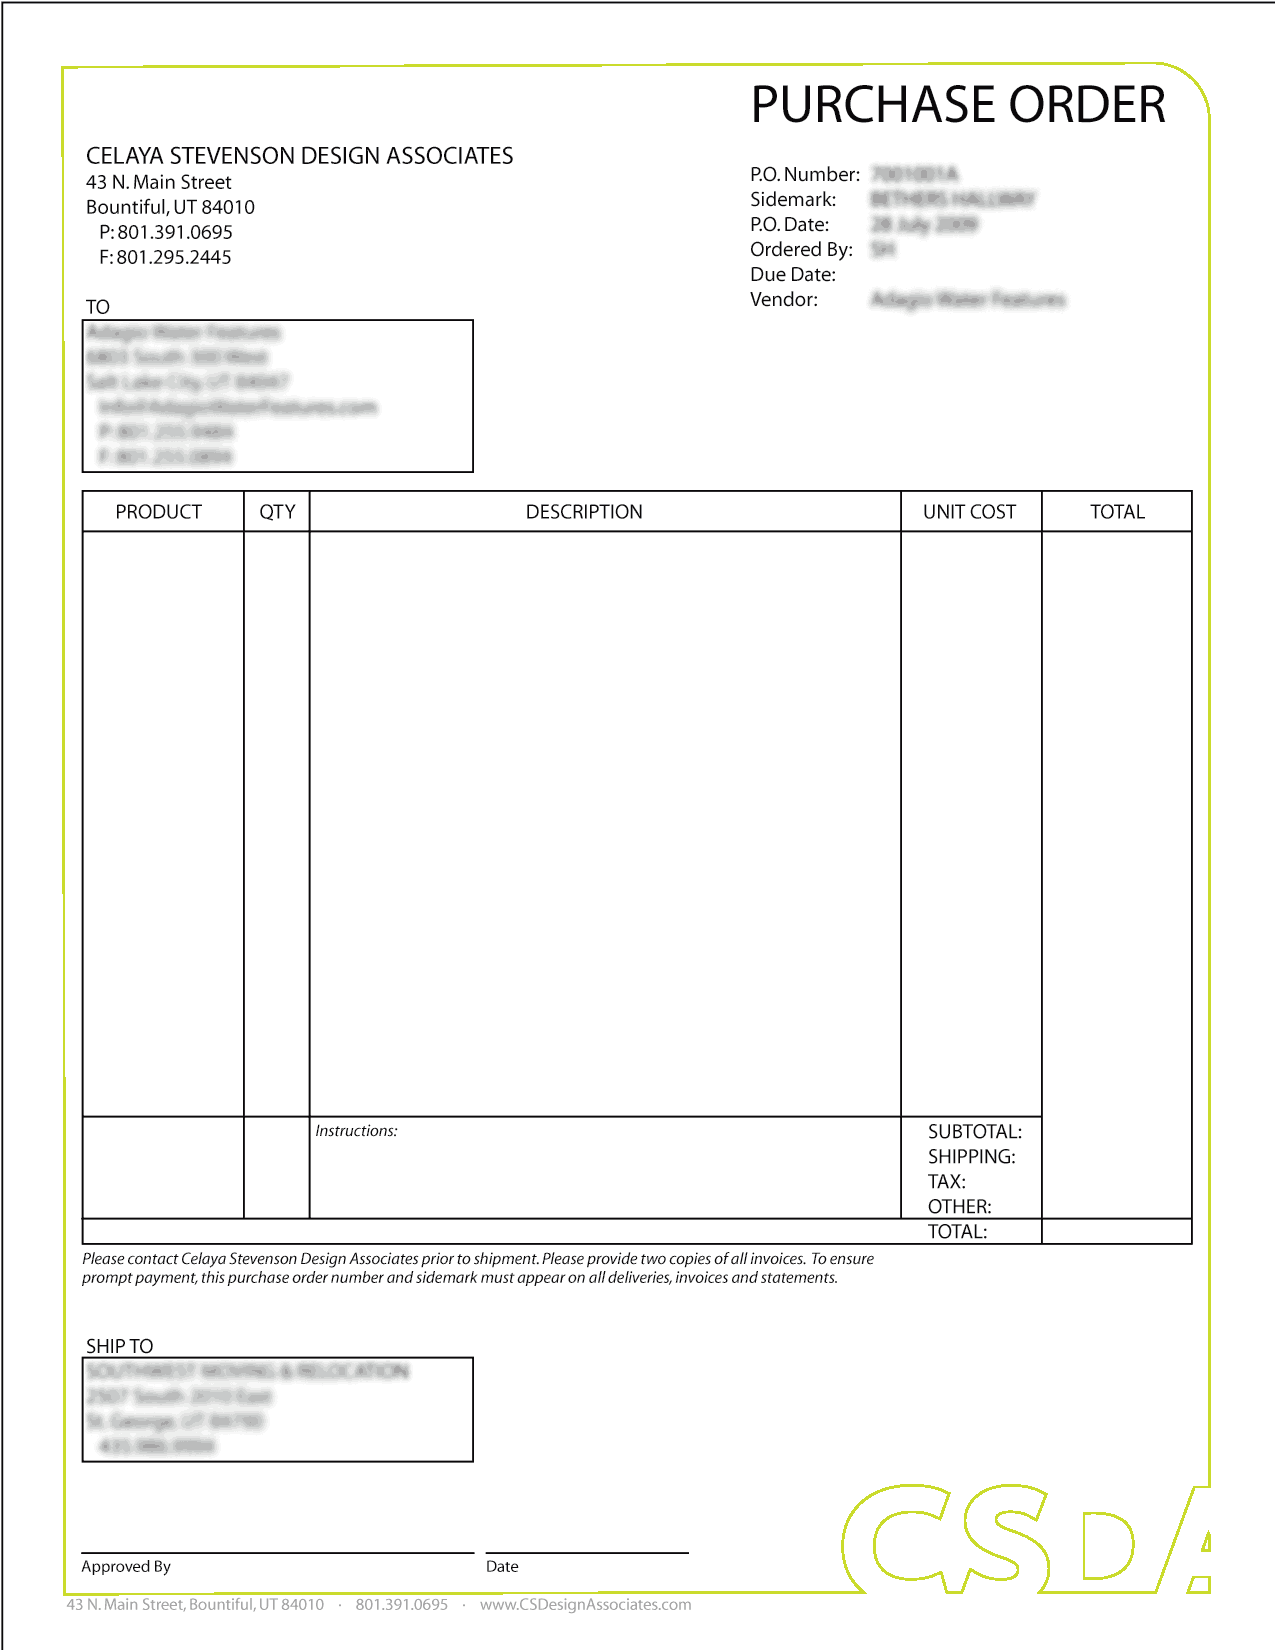 Purchase Order sample 28.9641